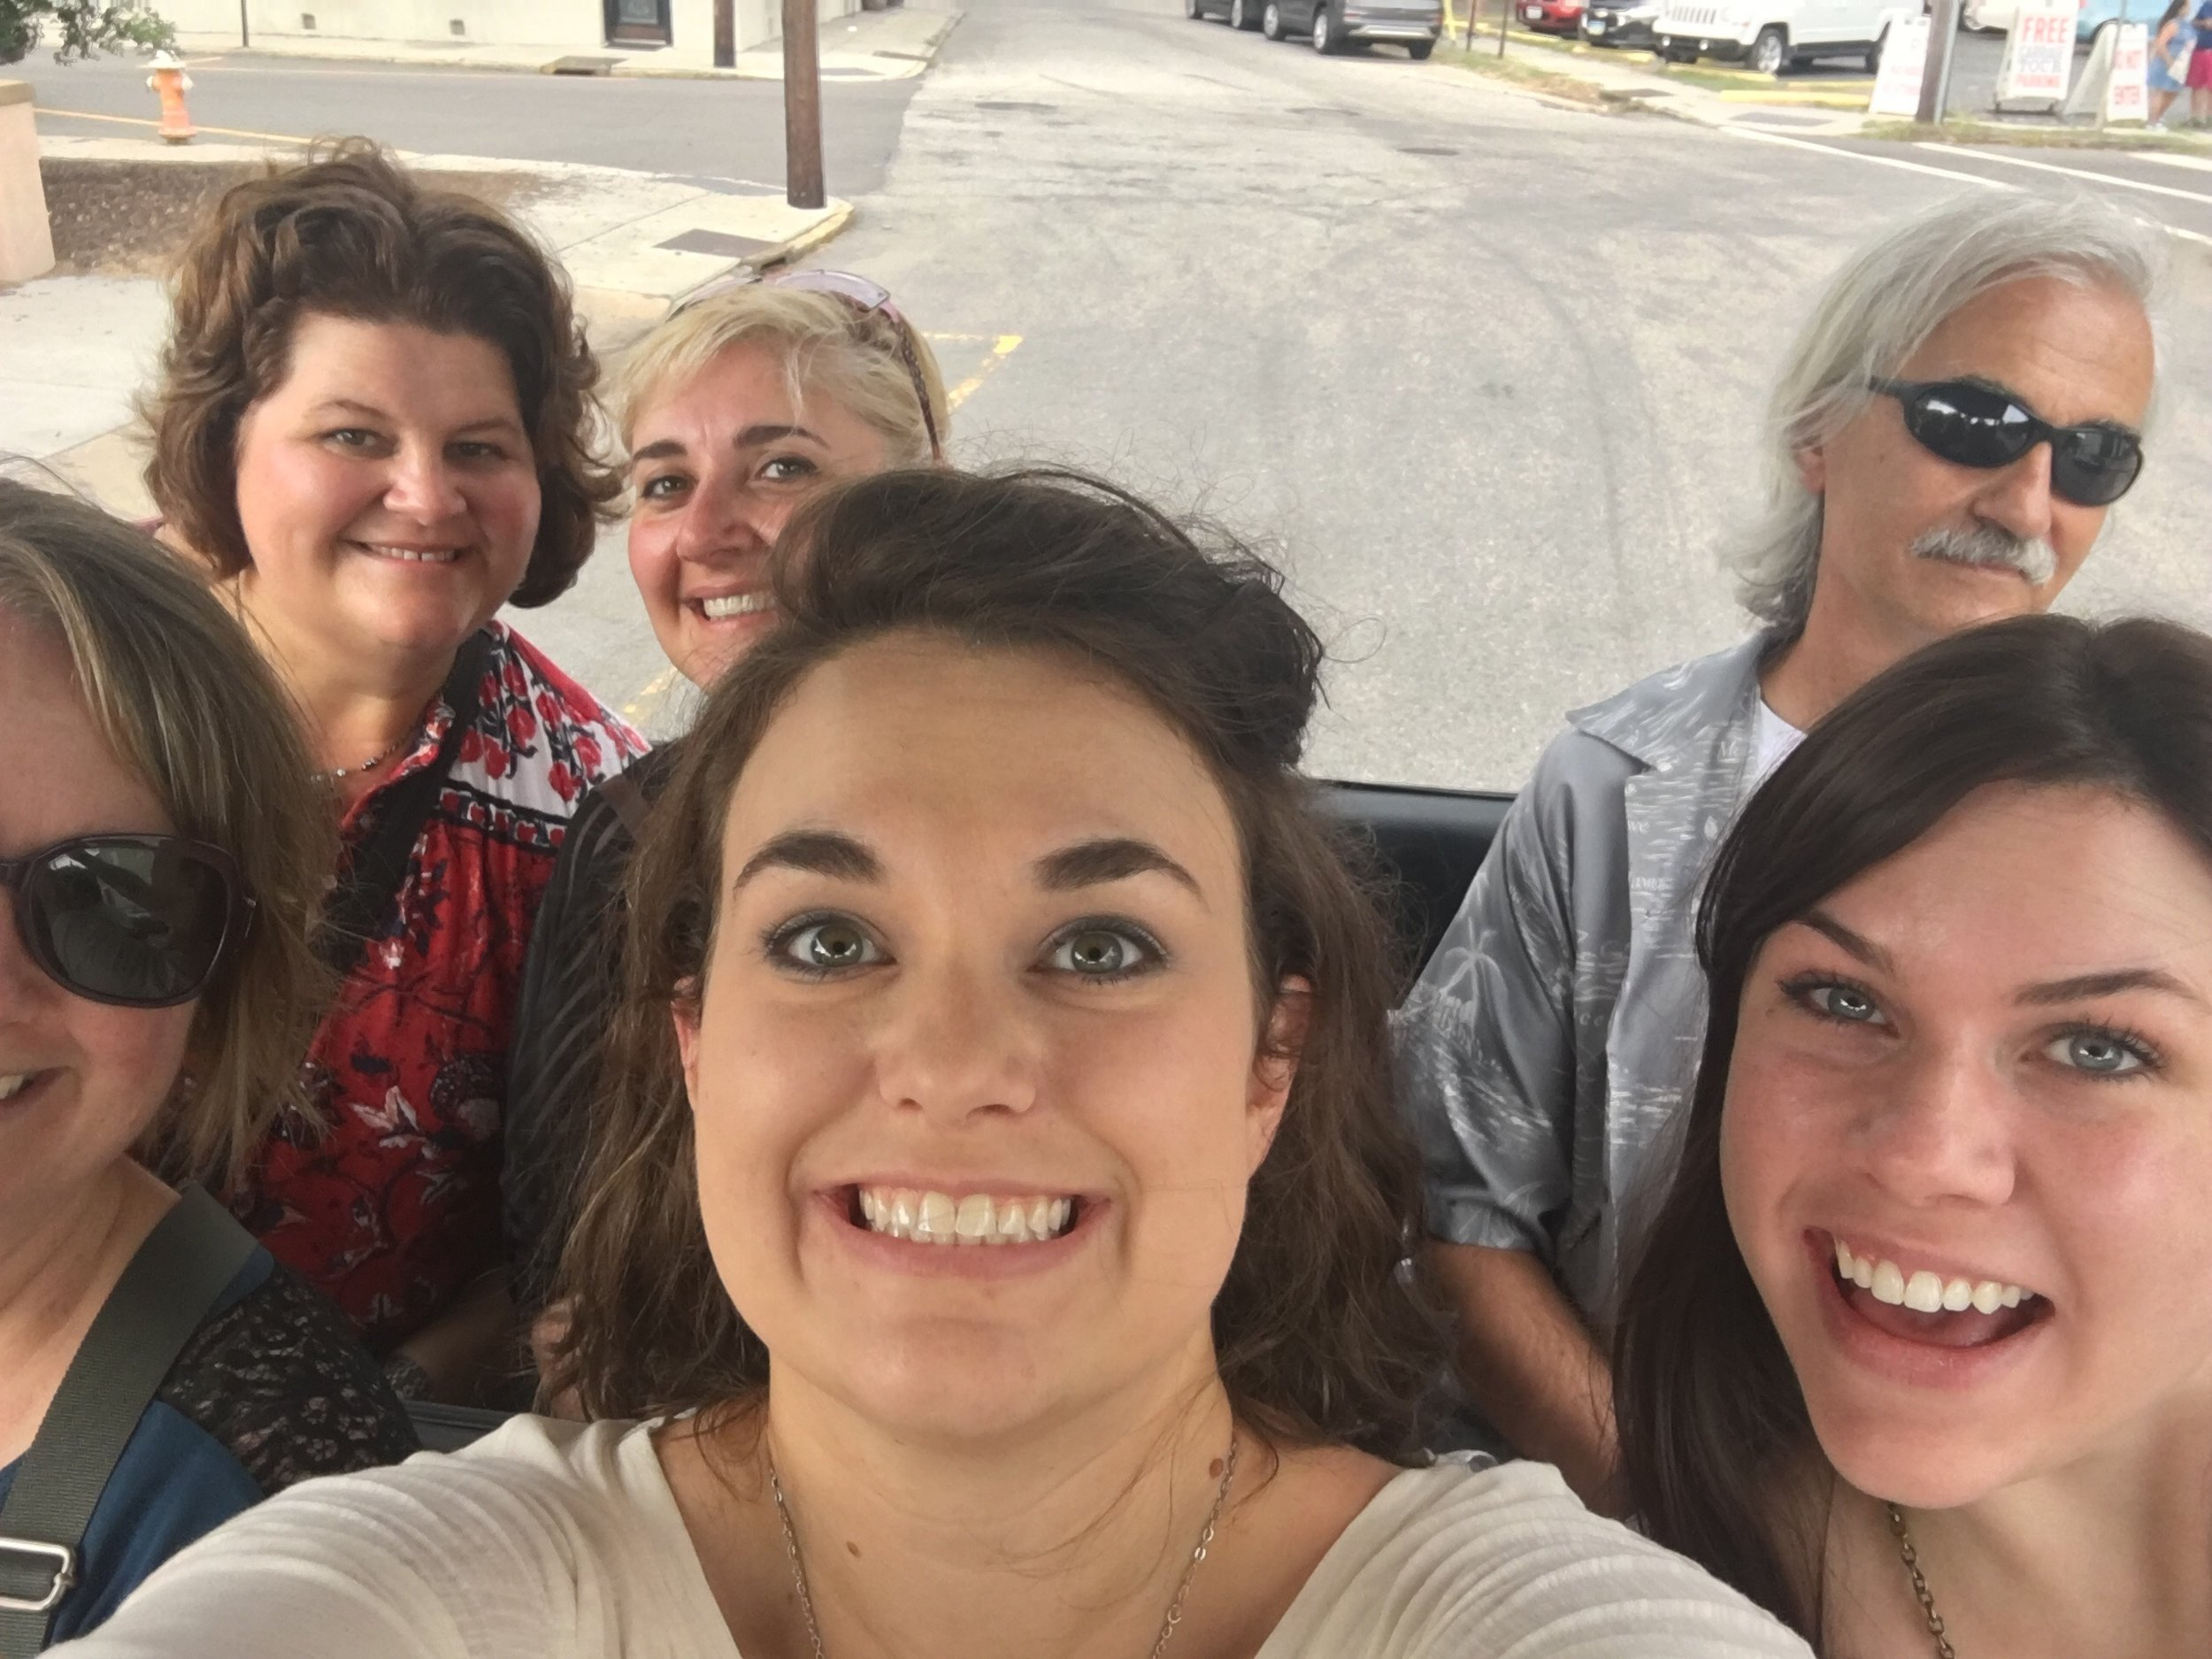 Riding a horse carriage together through downtown Charleston. Where was my selfie stick?